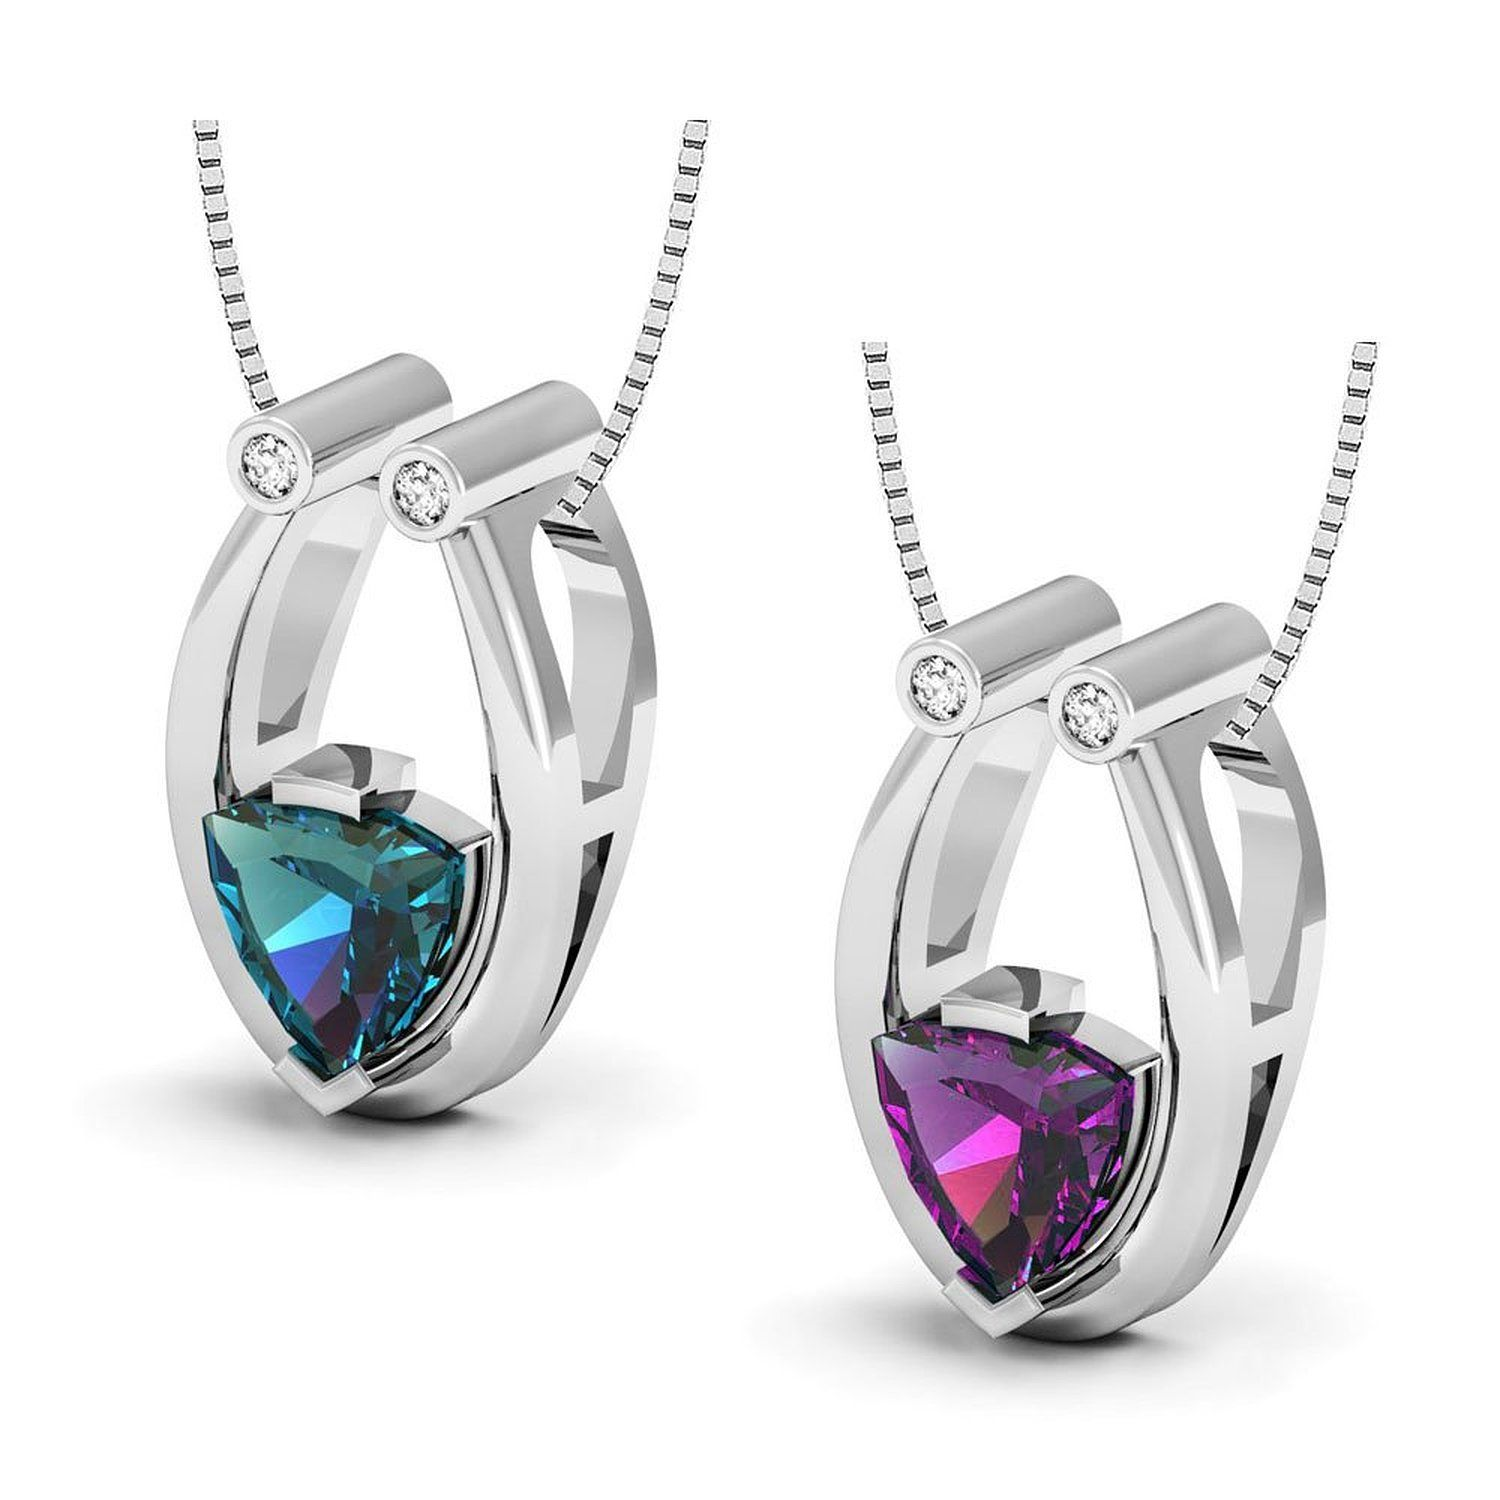 pendant necklace com mm necklaces dp jewelry amazon simulated heart alexandrite shape